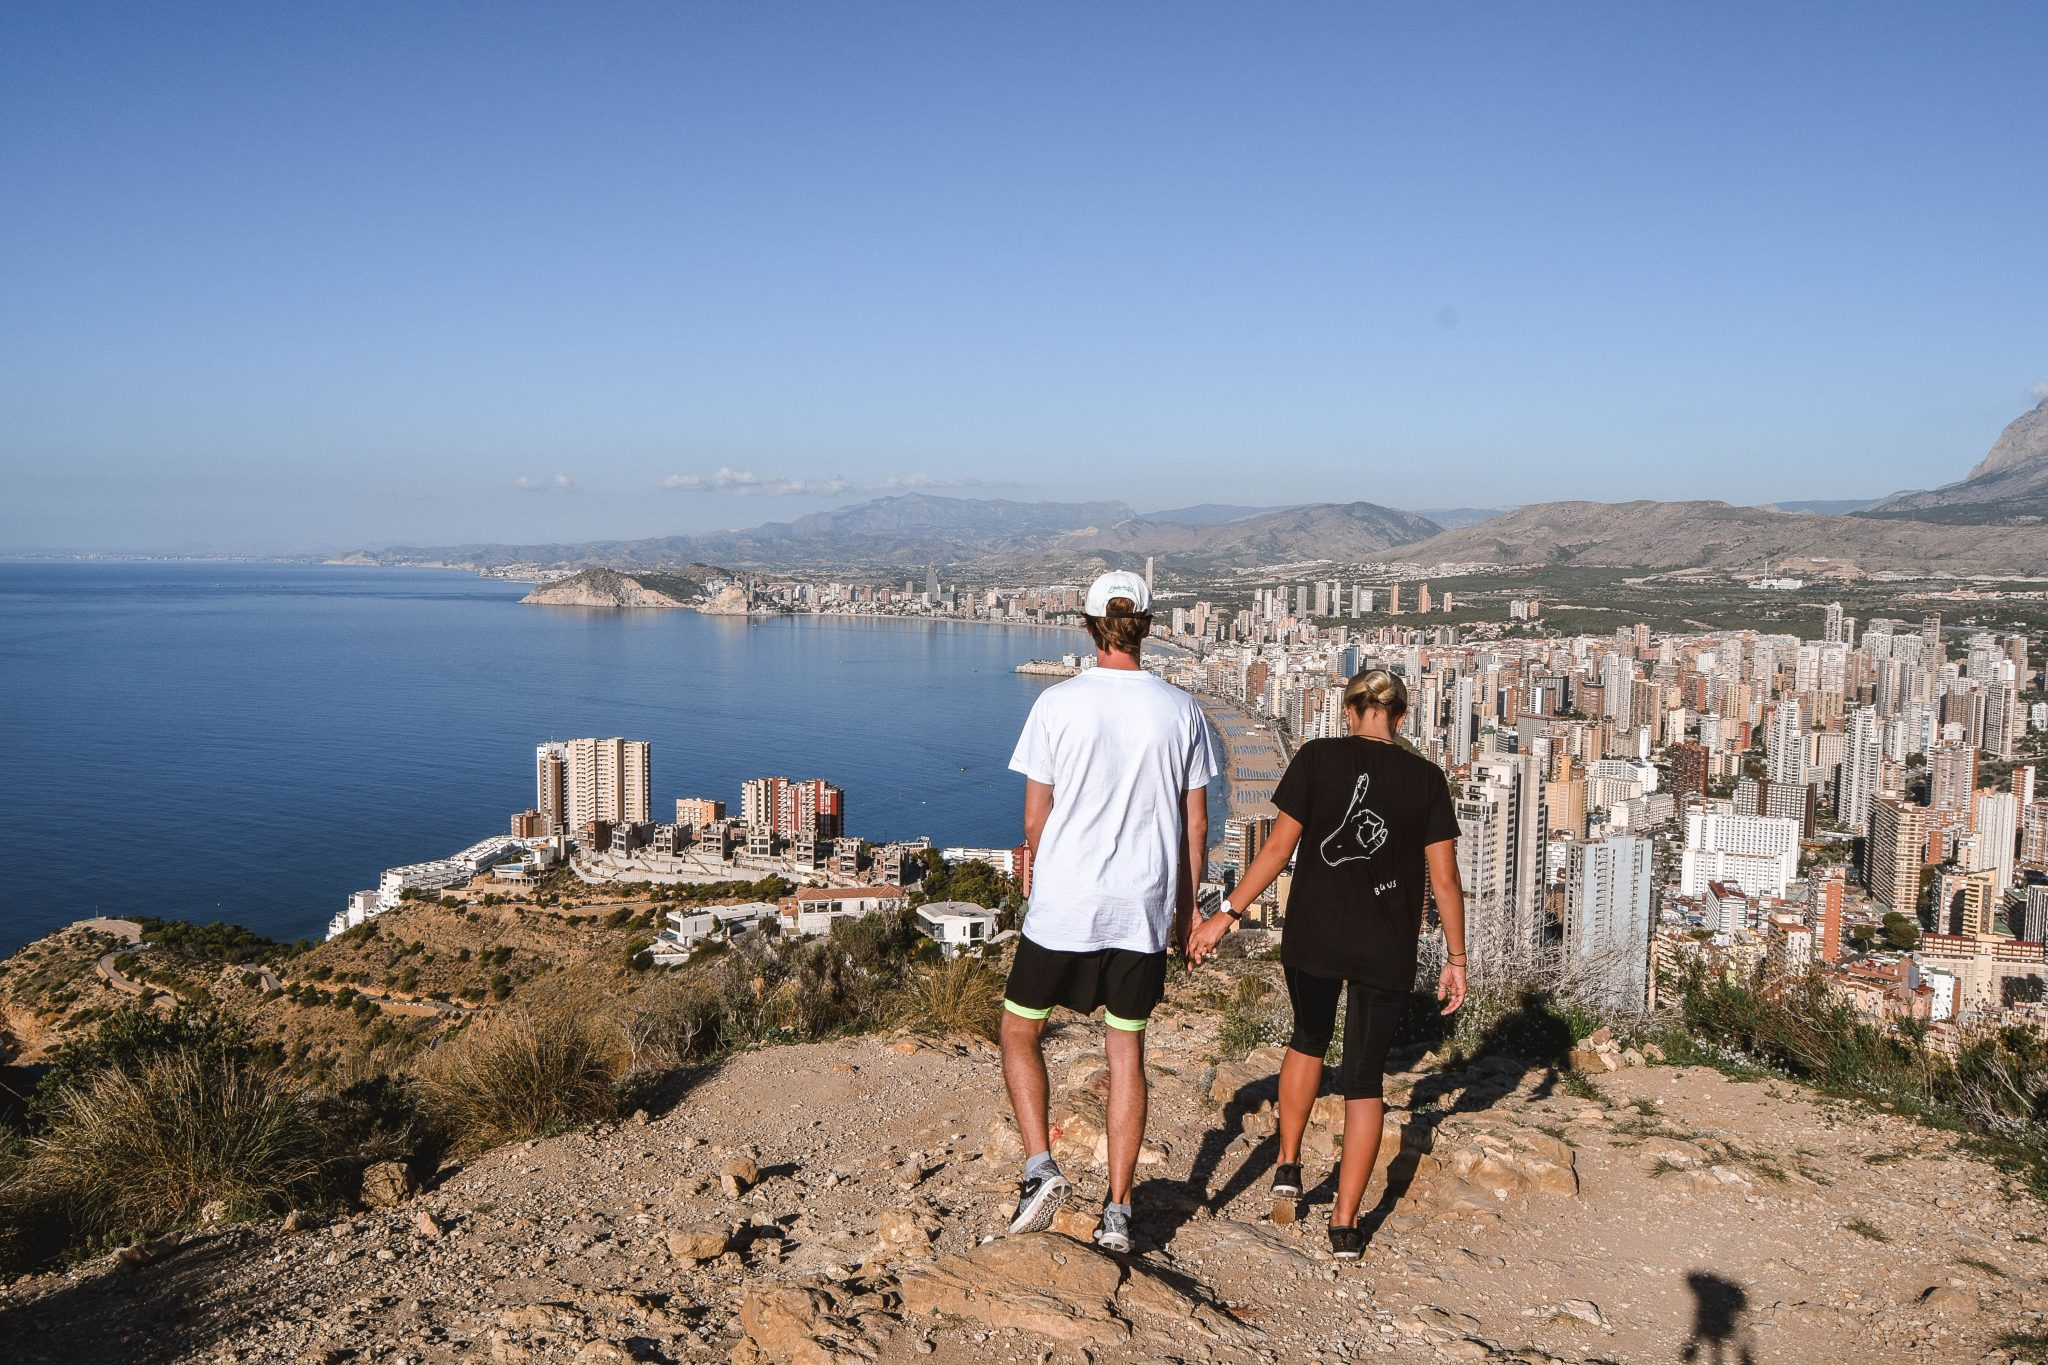 Wanderers & Warriors - Charlie & Lauren UK Travel Couple - Things To Do In Benidorm - Sierra Helada Natural Park - Serra Gelada - Hiking In Benidorm